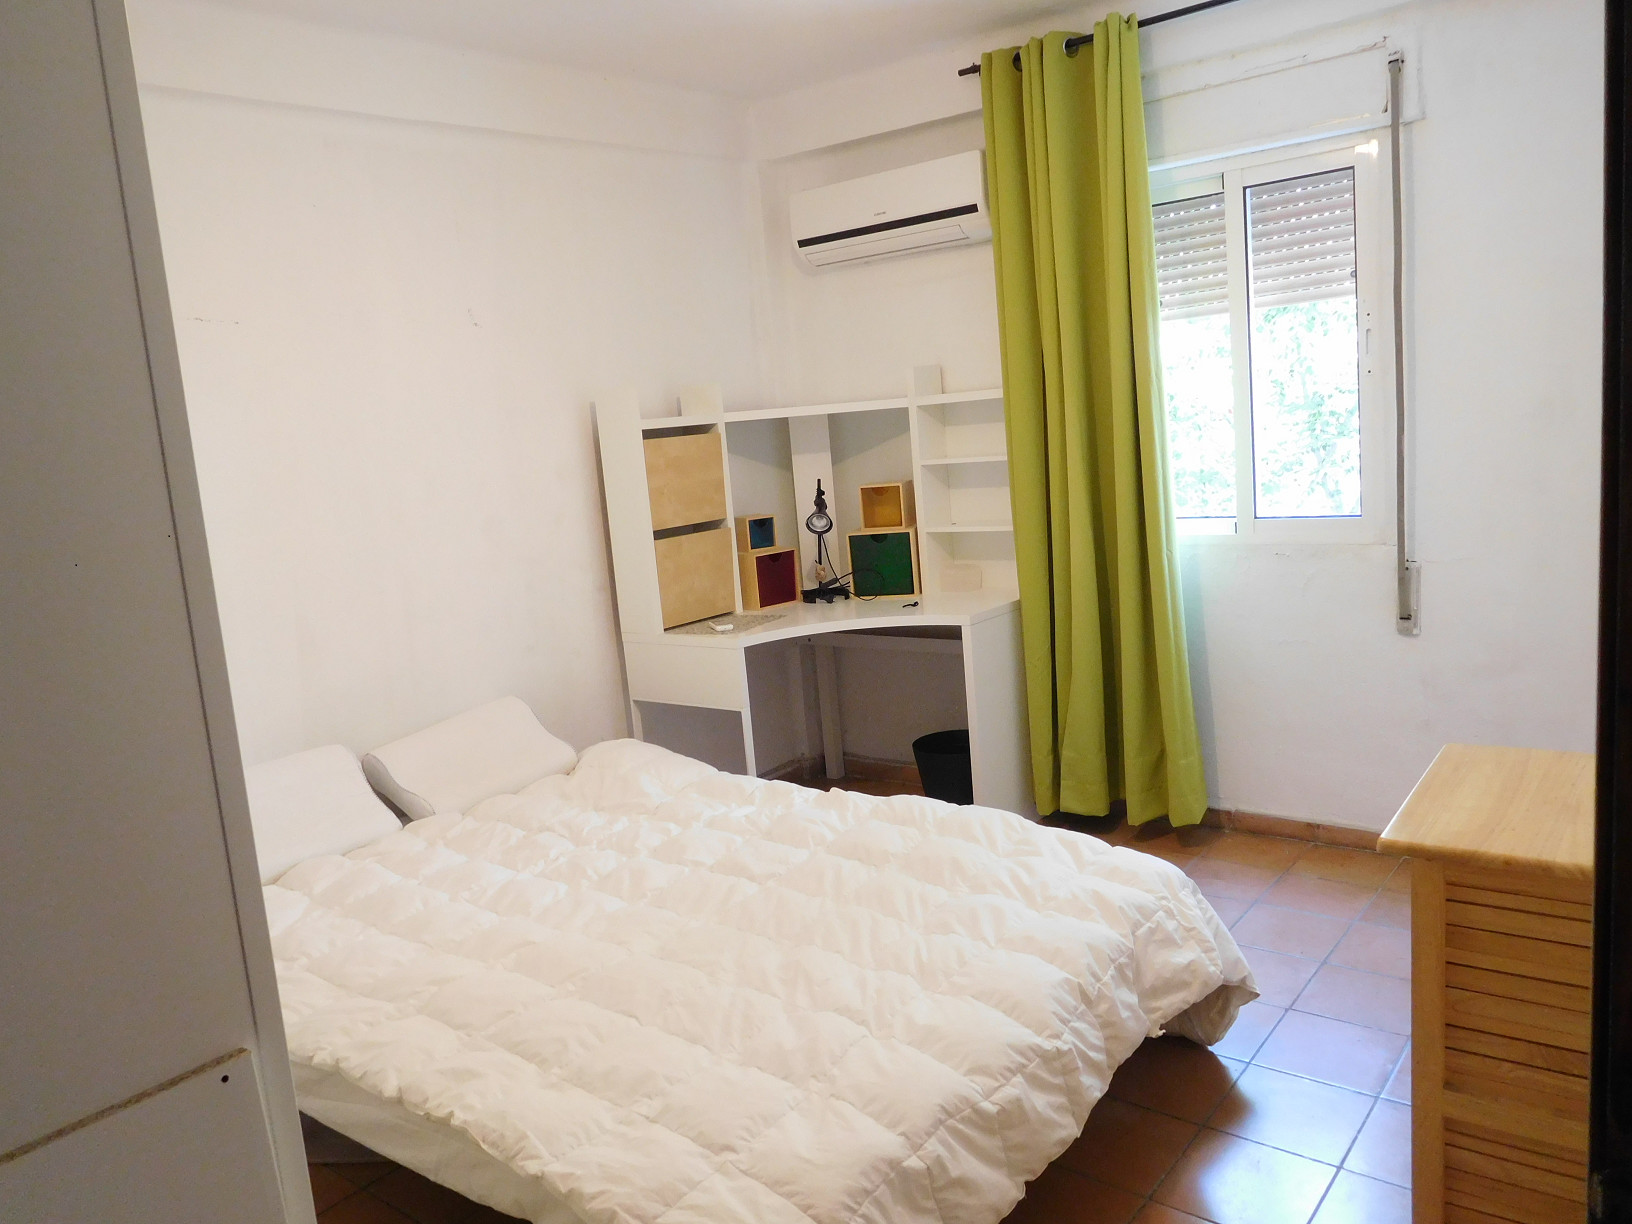 Double Room In Shared Flat Heating And Air Conditioning